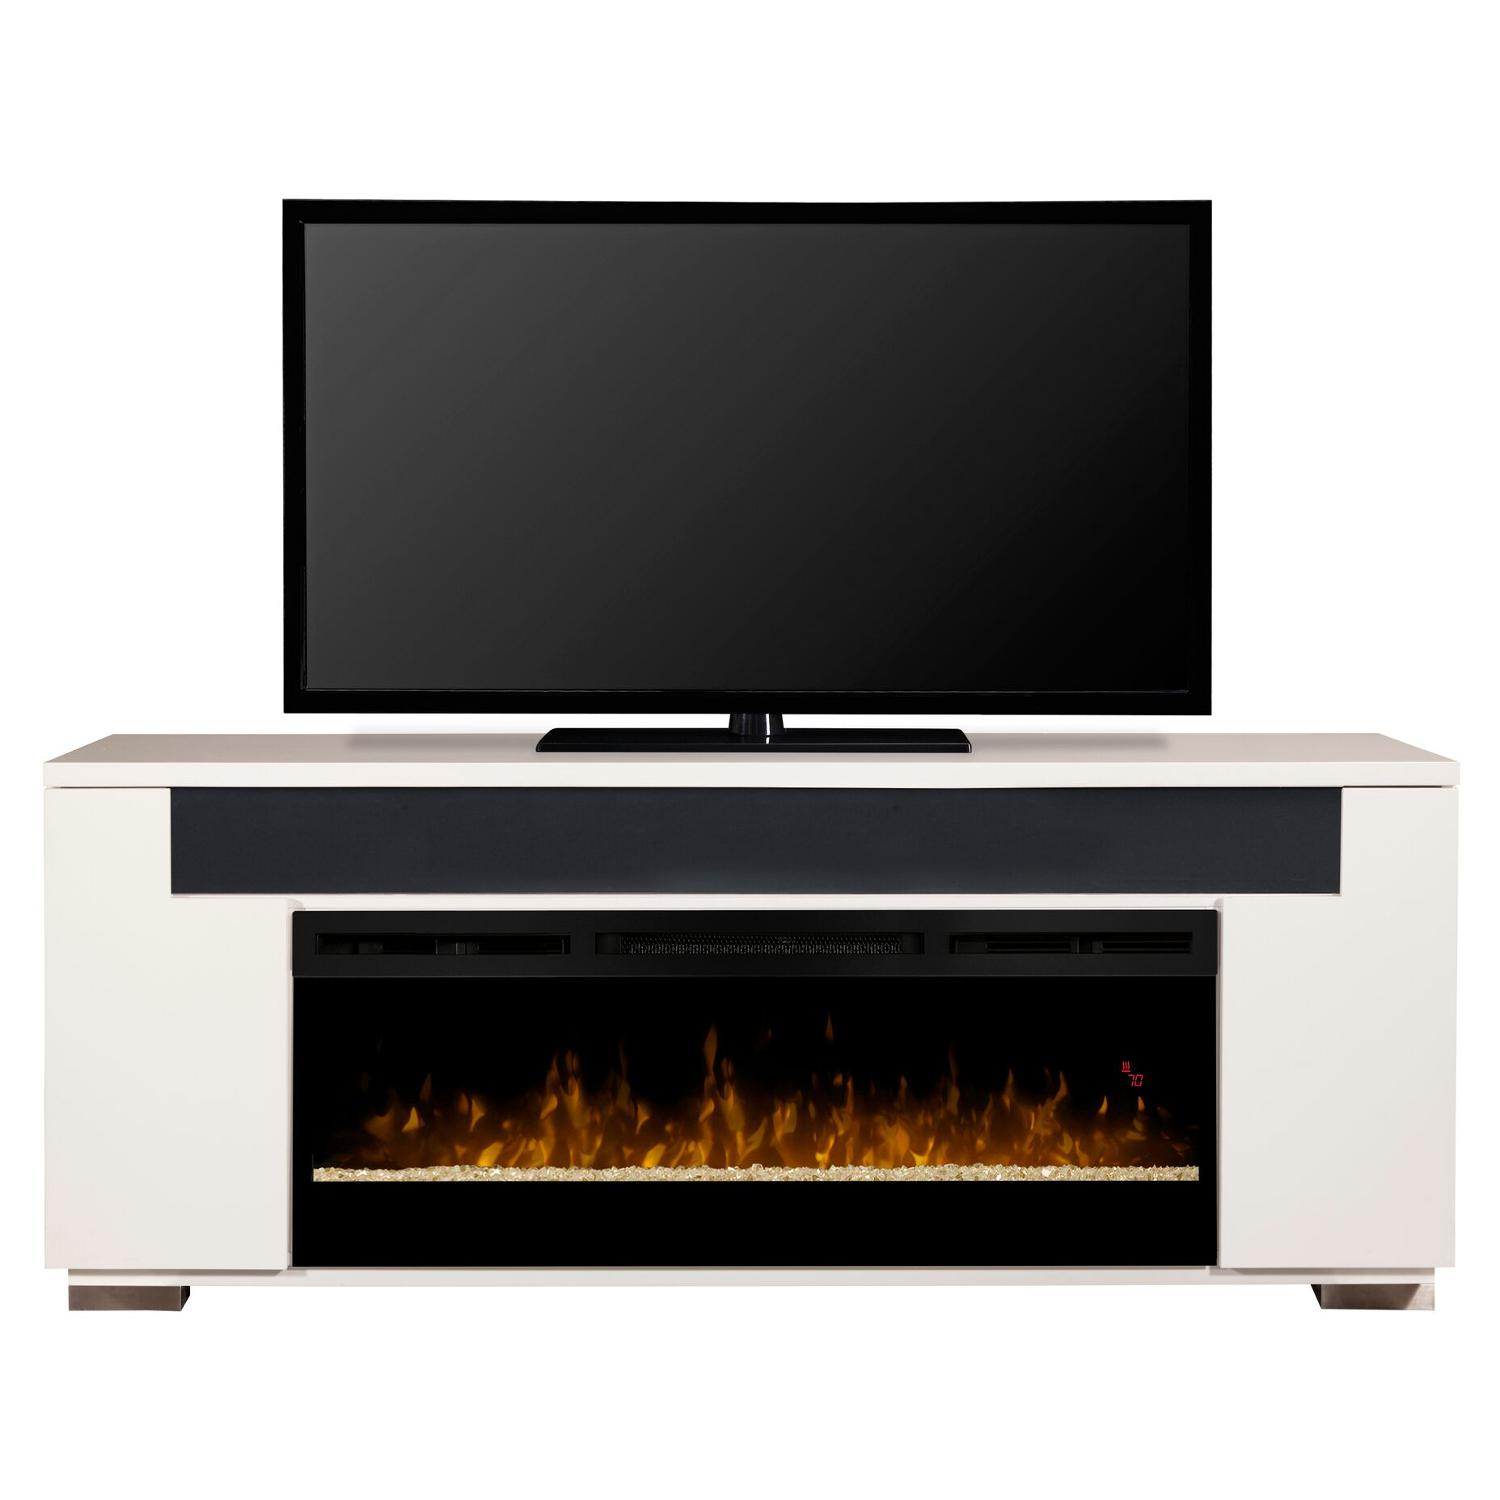 76 Dimplex Haley Glass Ember Bed Media Console Electric Fireplace In Rift Grey Or White